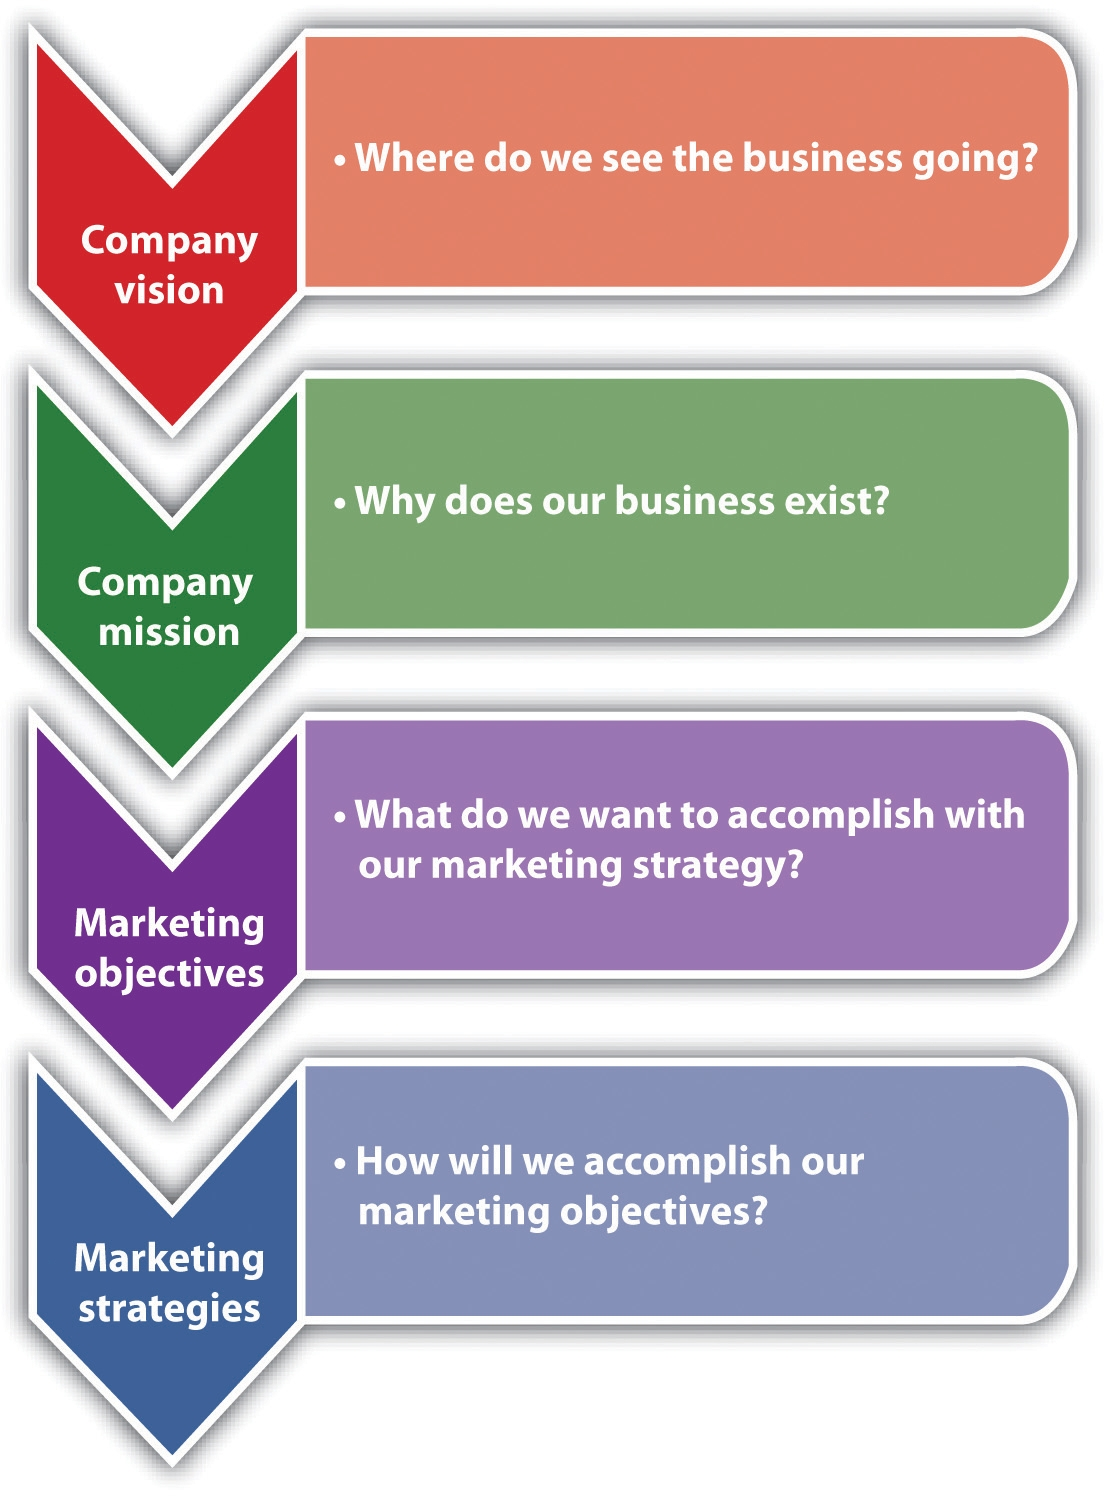 marketing plan management Marketing management is the process of developing strategies and planning for product or services, advertising in many cases, marketing management will develop a marketing plan to specify how the company will execute the chosen strategy and achieve the business' objectives.